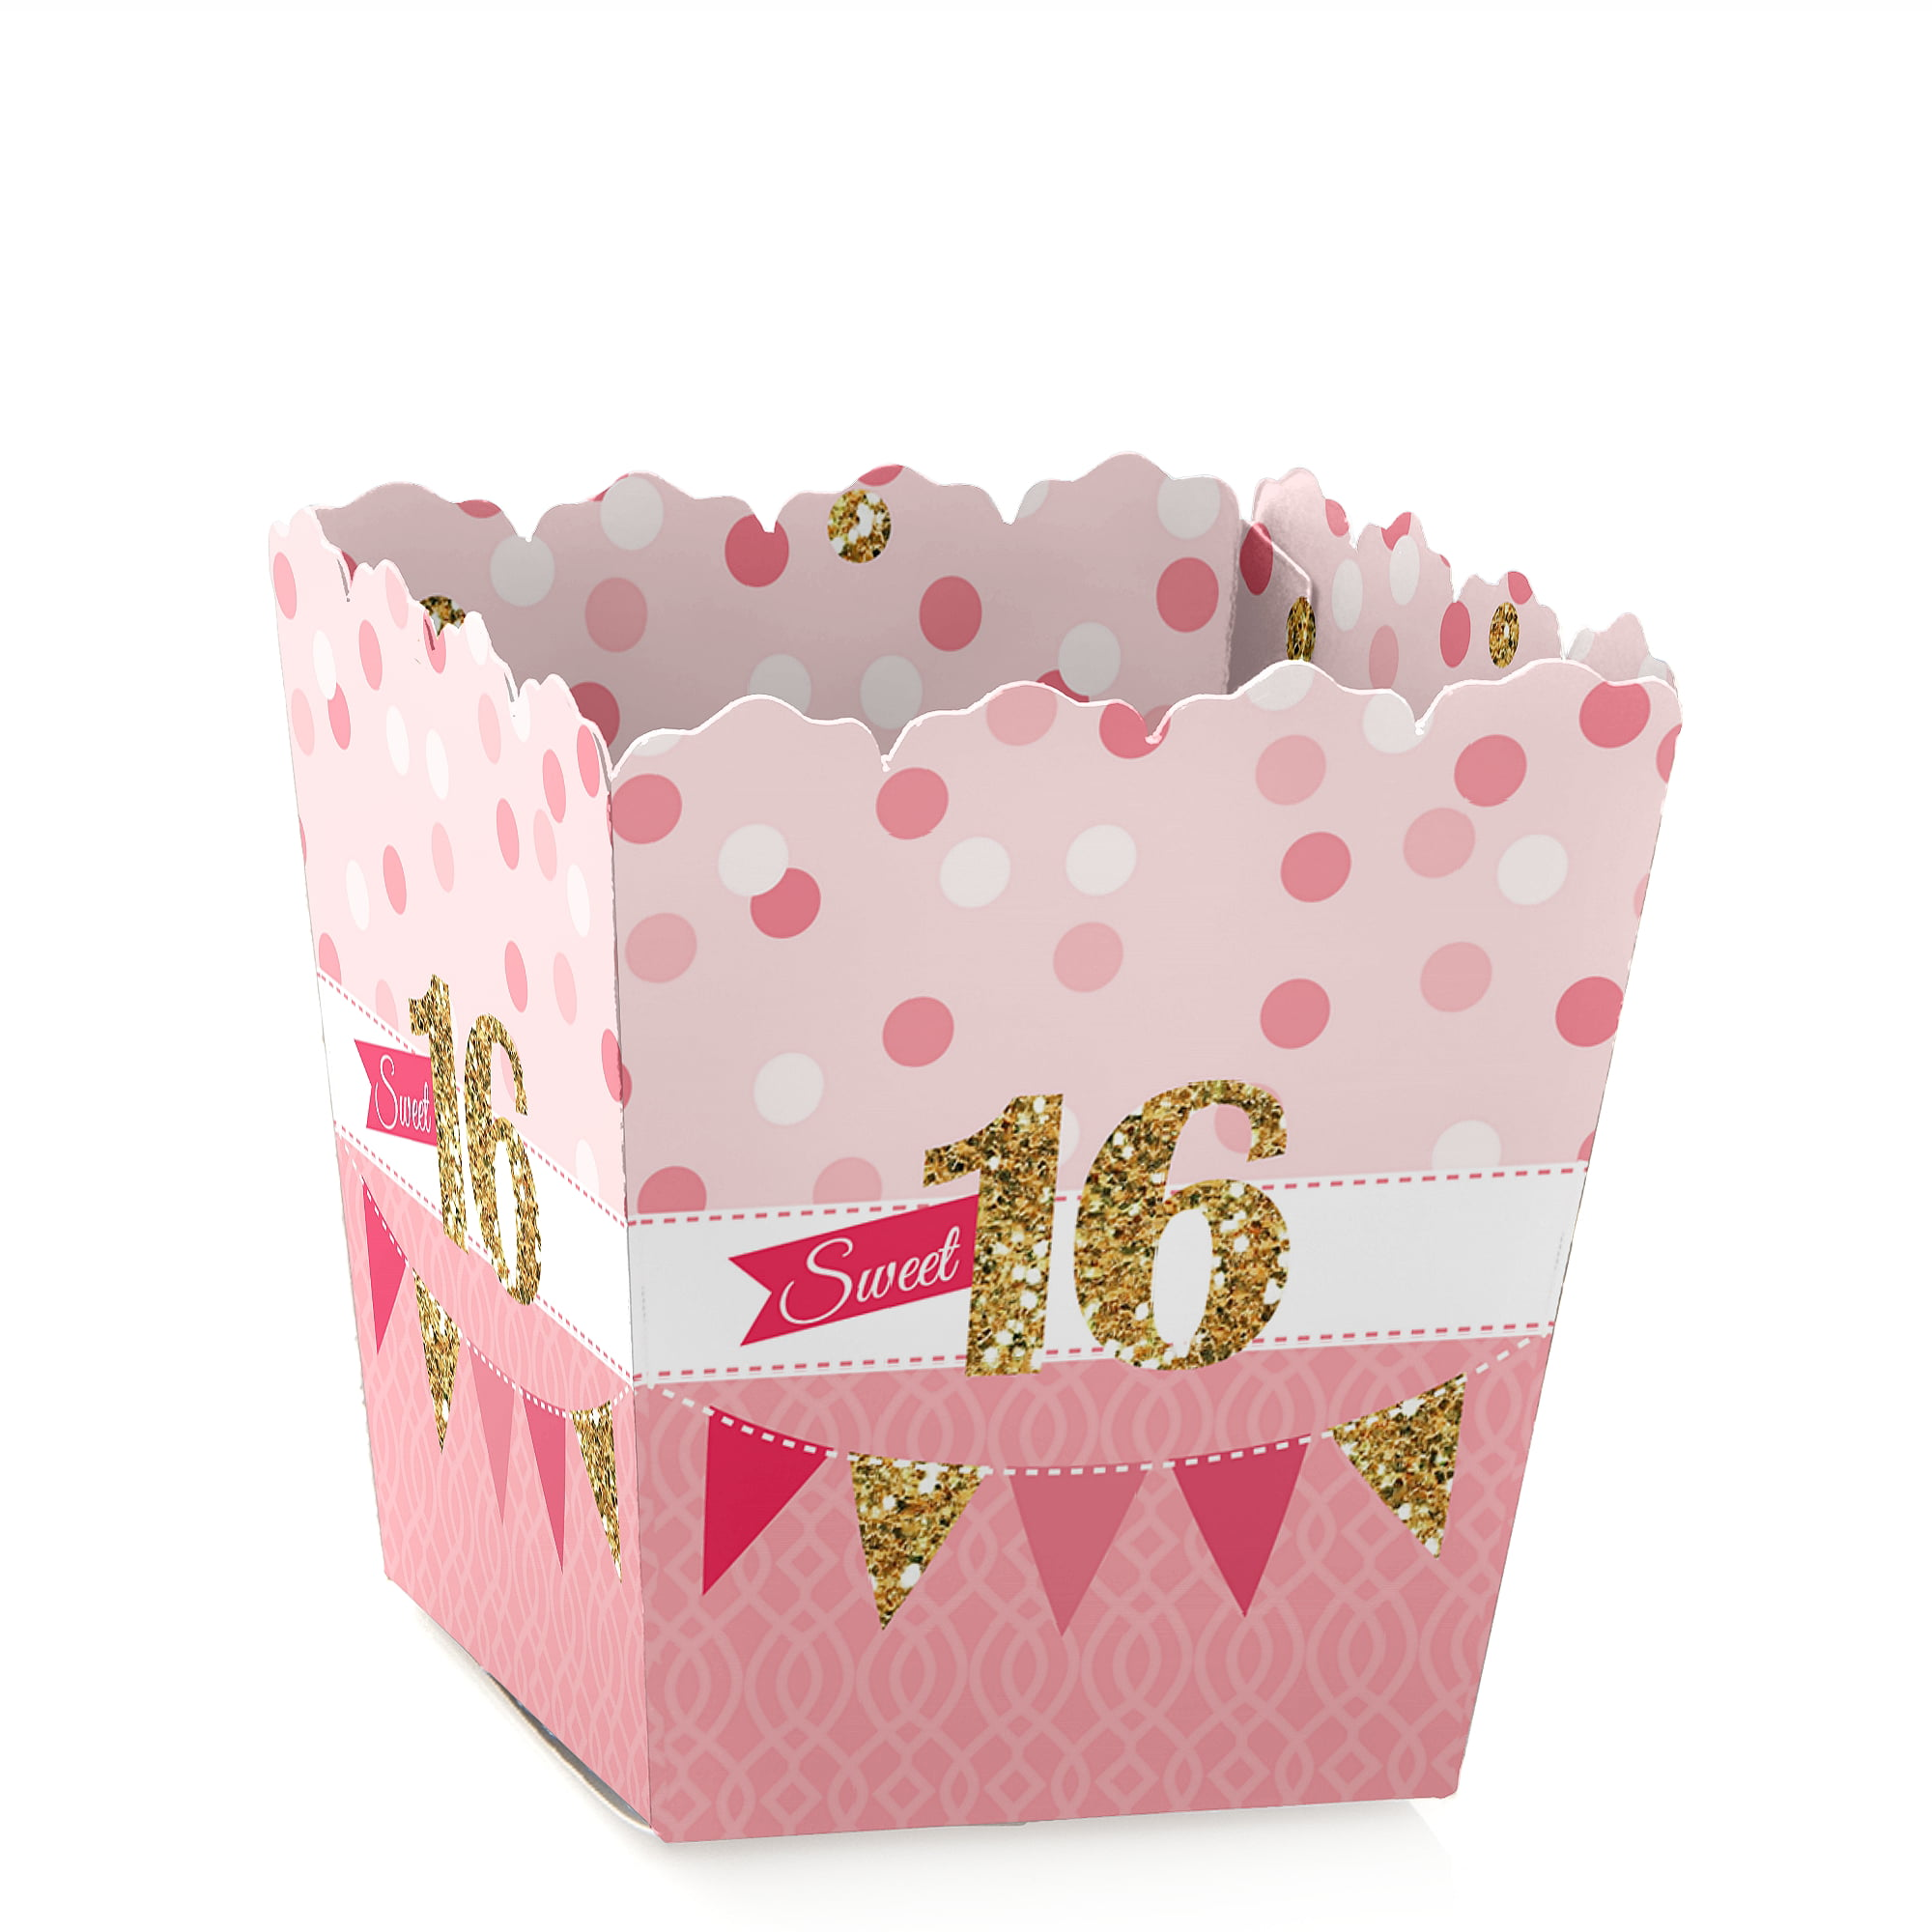 Party Gift Goody Treat Candy Bags for Train Party Favors Decor Birthday Party Decor for Train Themed Birthday Decorations 16 PCS Party Favor Bags for Train Birthday Party Supplies